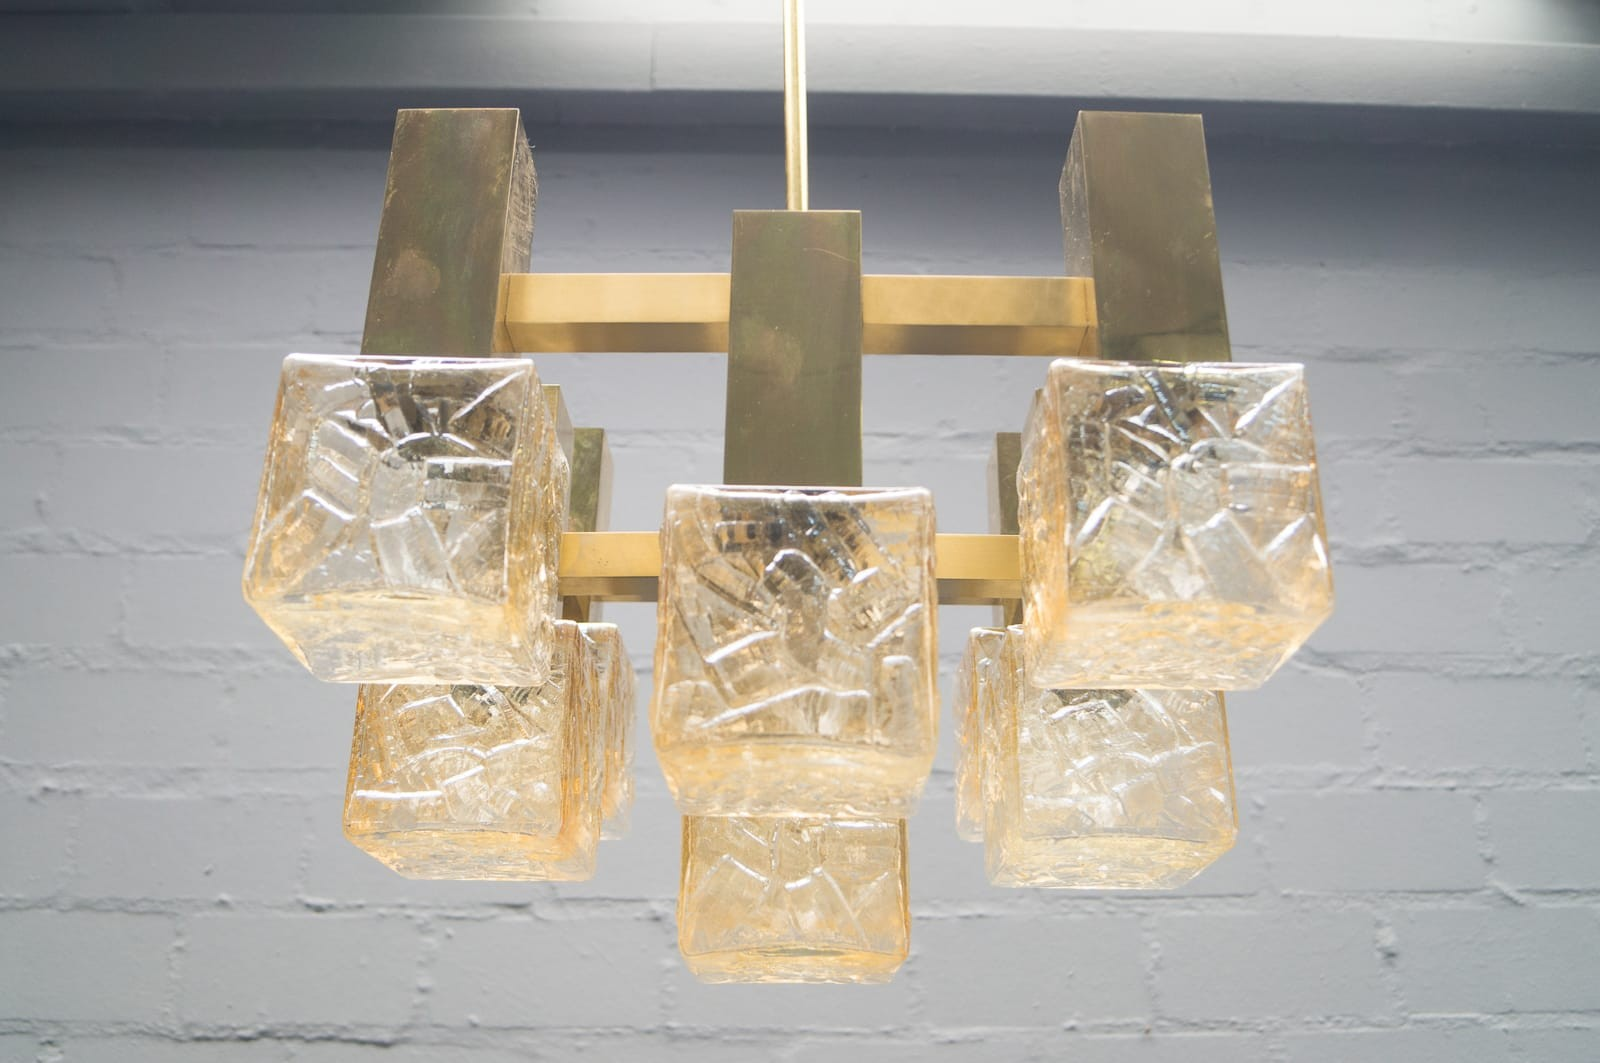 crystal waterford black of design shades teal replacements rectangular parts archived chandelier prism glass cheap size chandelie crystals replacement chandeliers s shade awesome lamp full